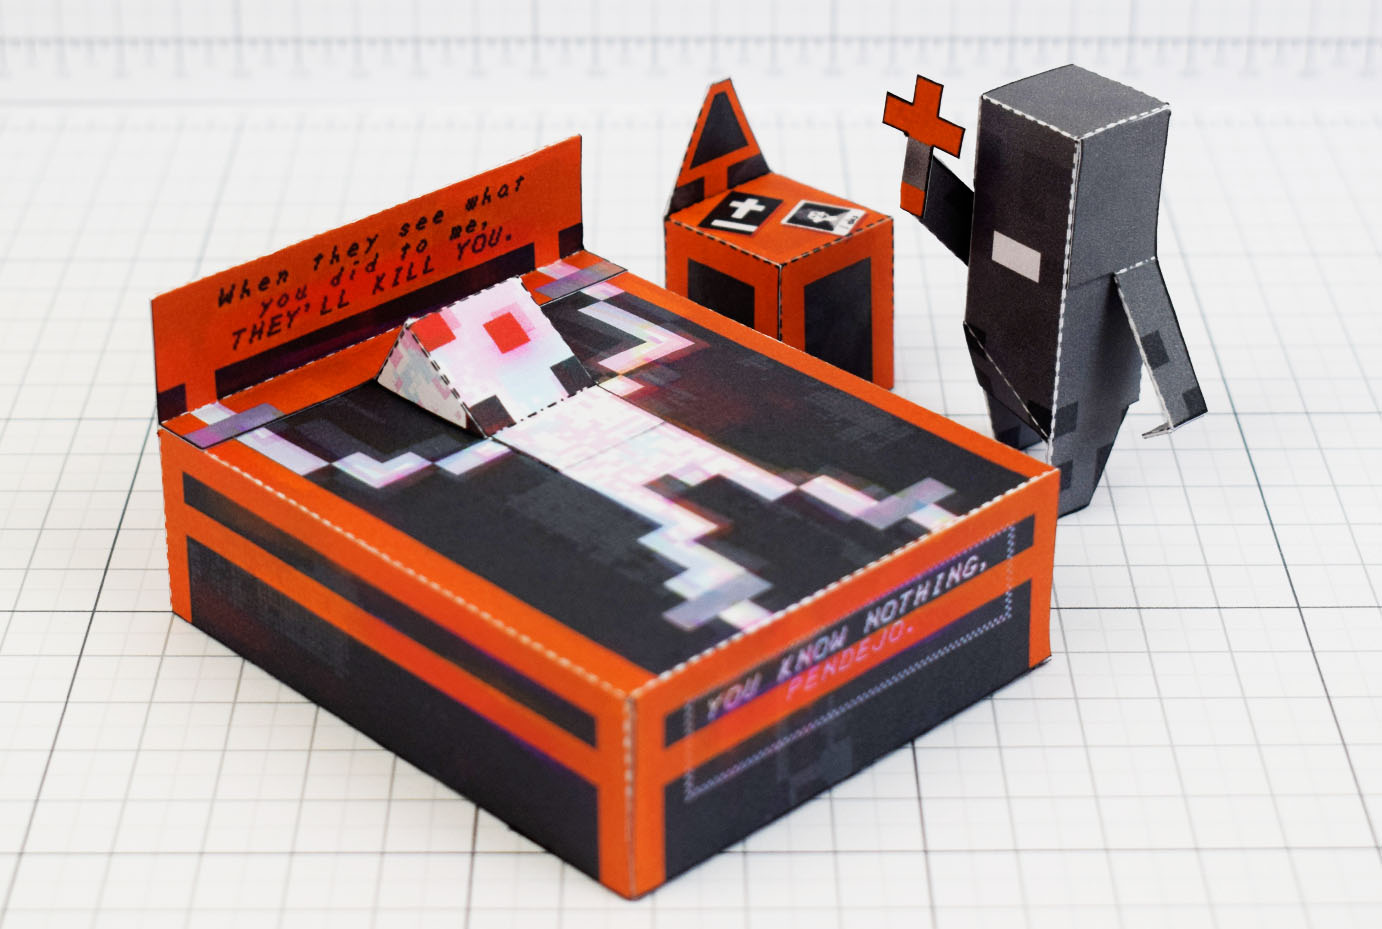 PTI - Faith exorcism exorcist Paper Toy Image - Main